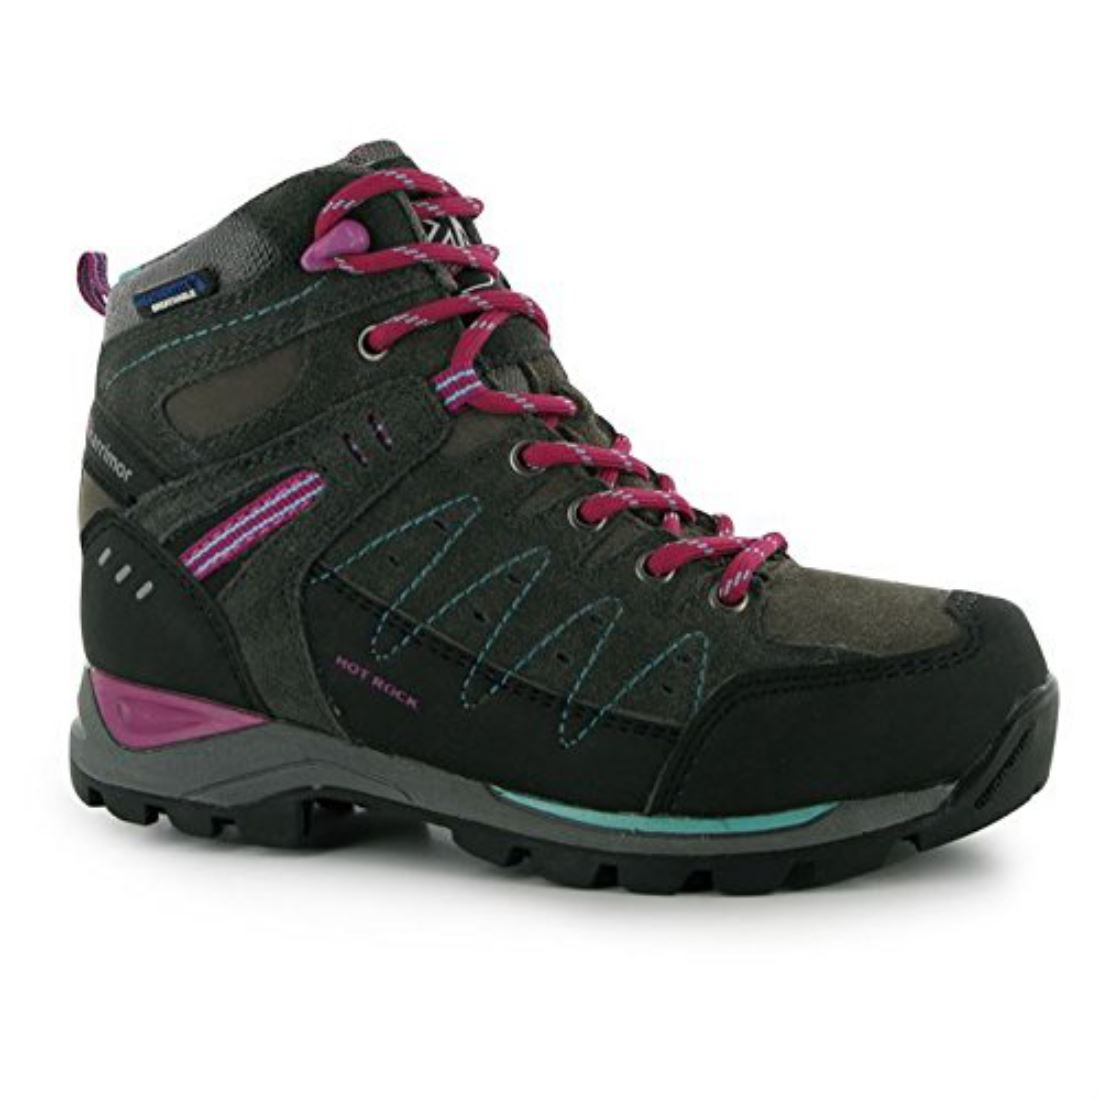 Karrimor-Hot-Rock-Hiking-Trekking-Breathable-Walking-Shoes-Lace-Up-Boys